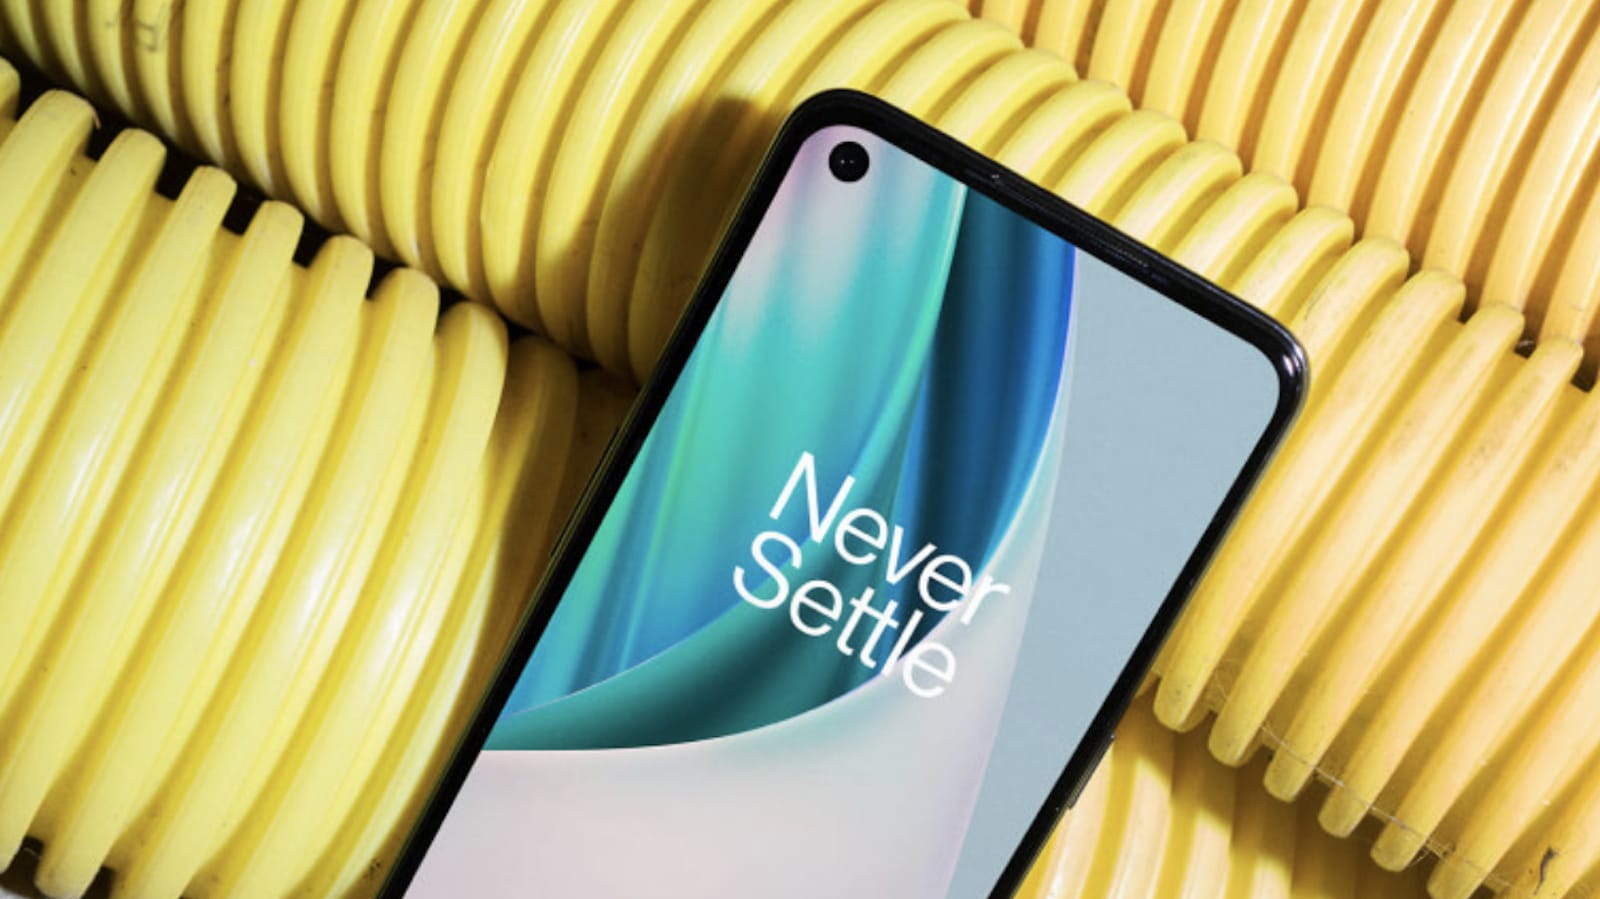 OnePlus Nord N10 5G-ready phone features a 90Hz refresh rate for smoother scrolling